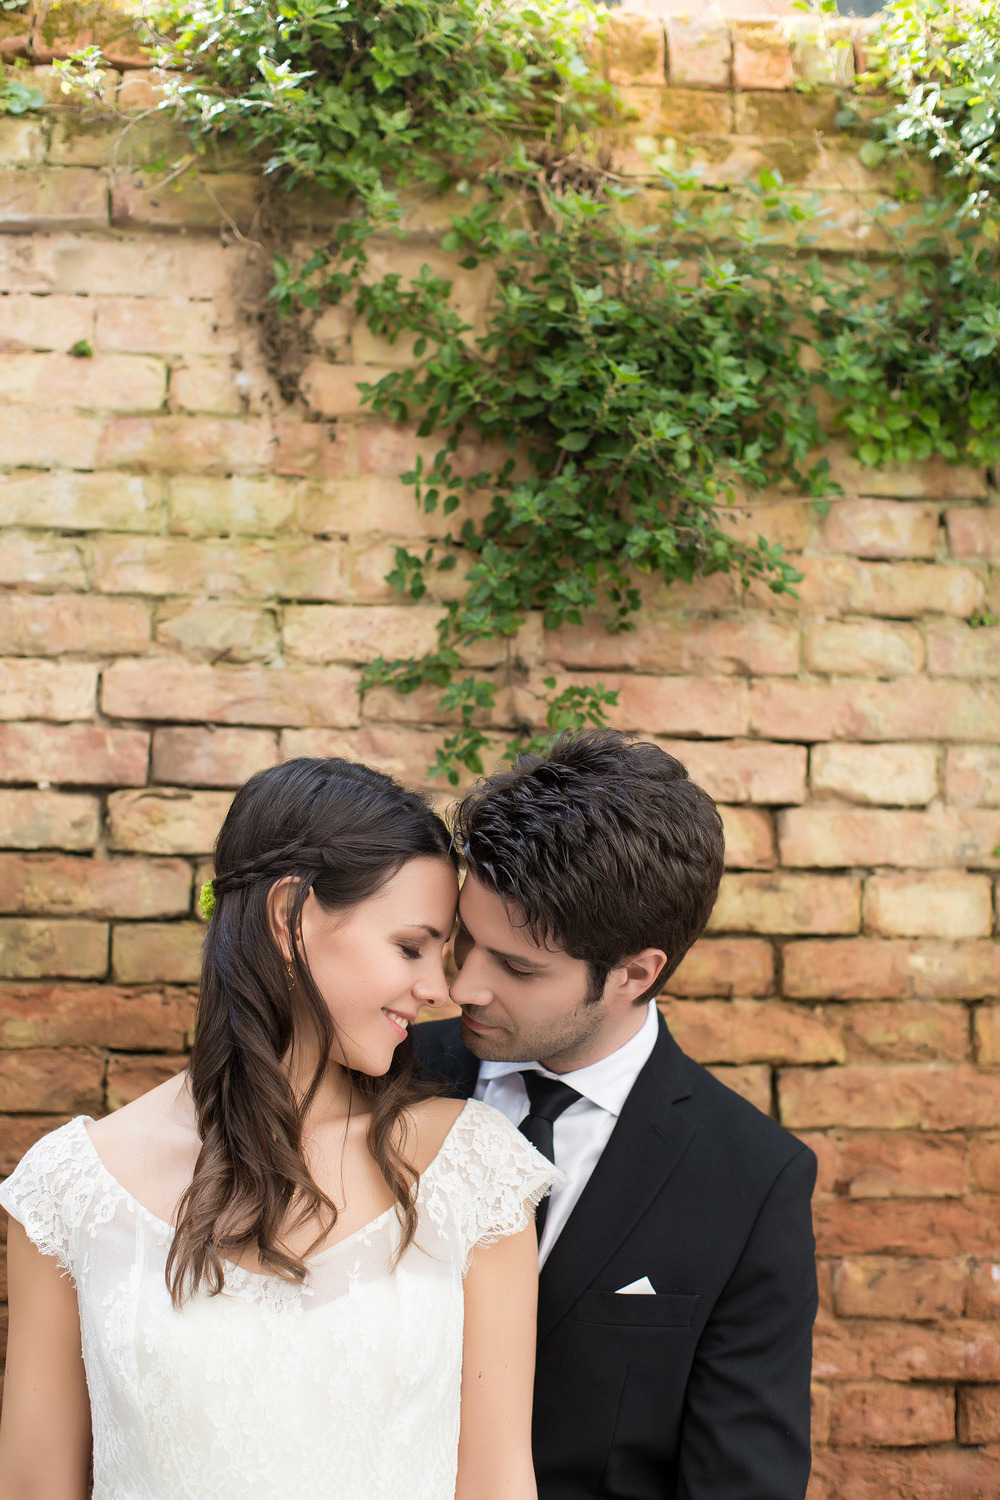 VeniceStyledShoot (106 of 170).jpg